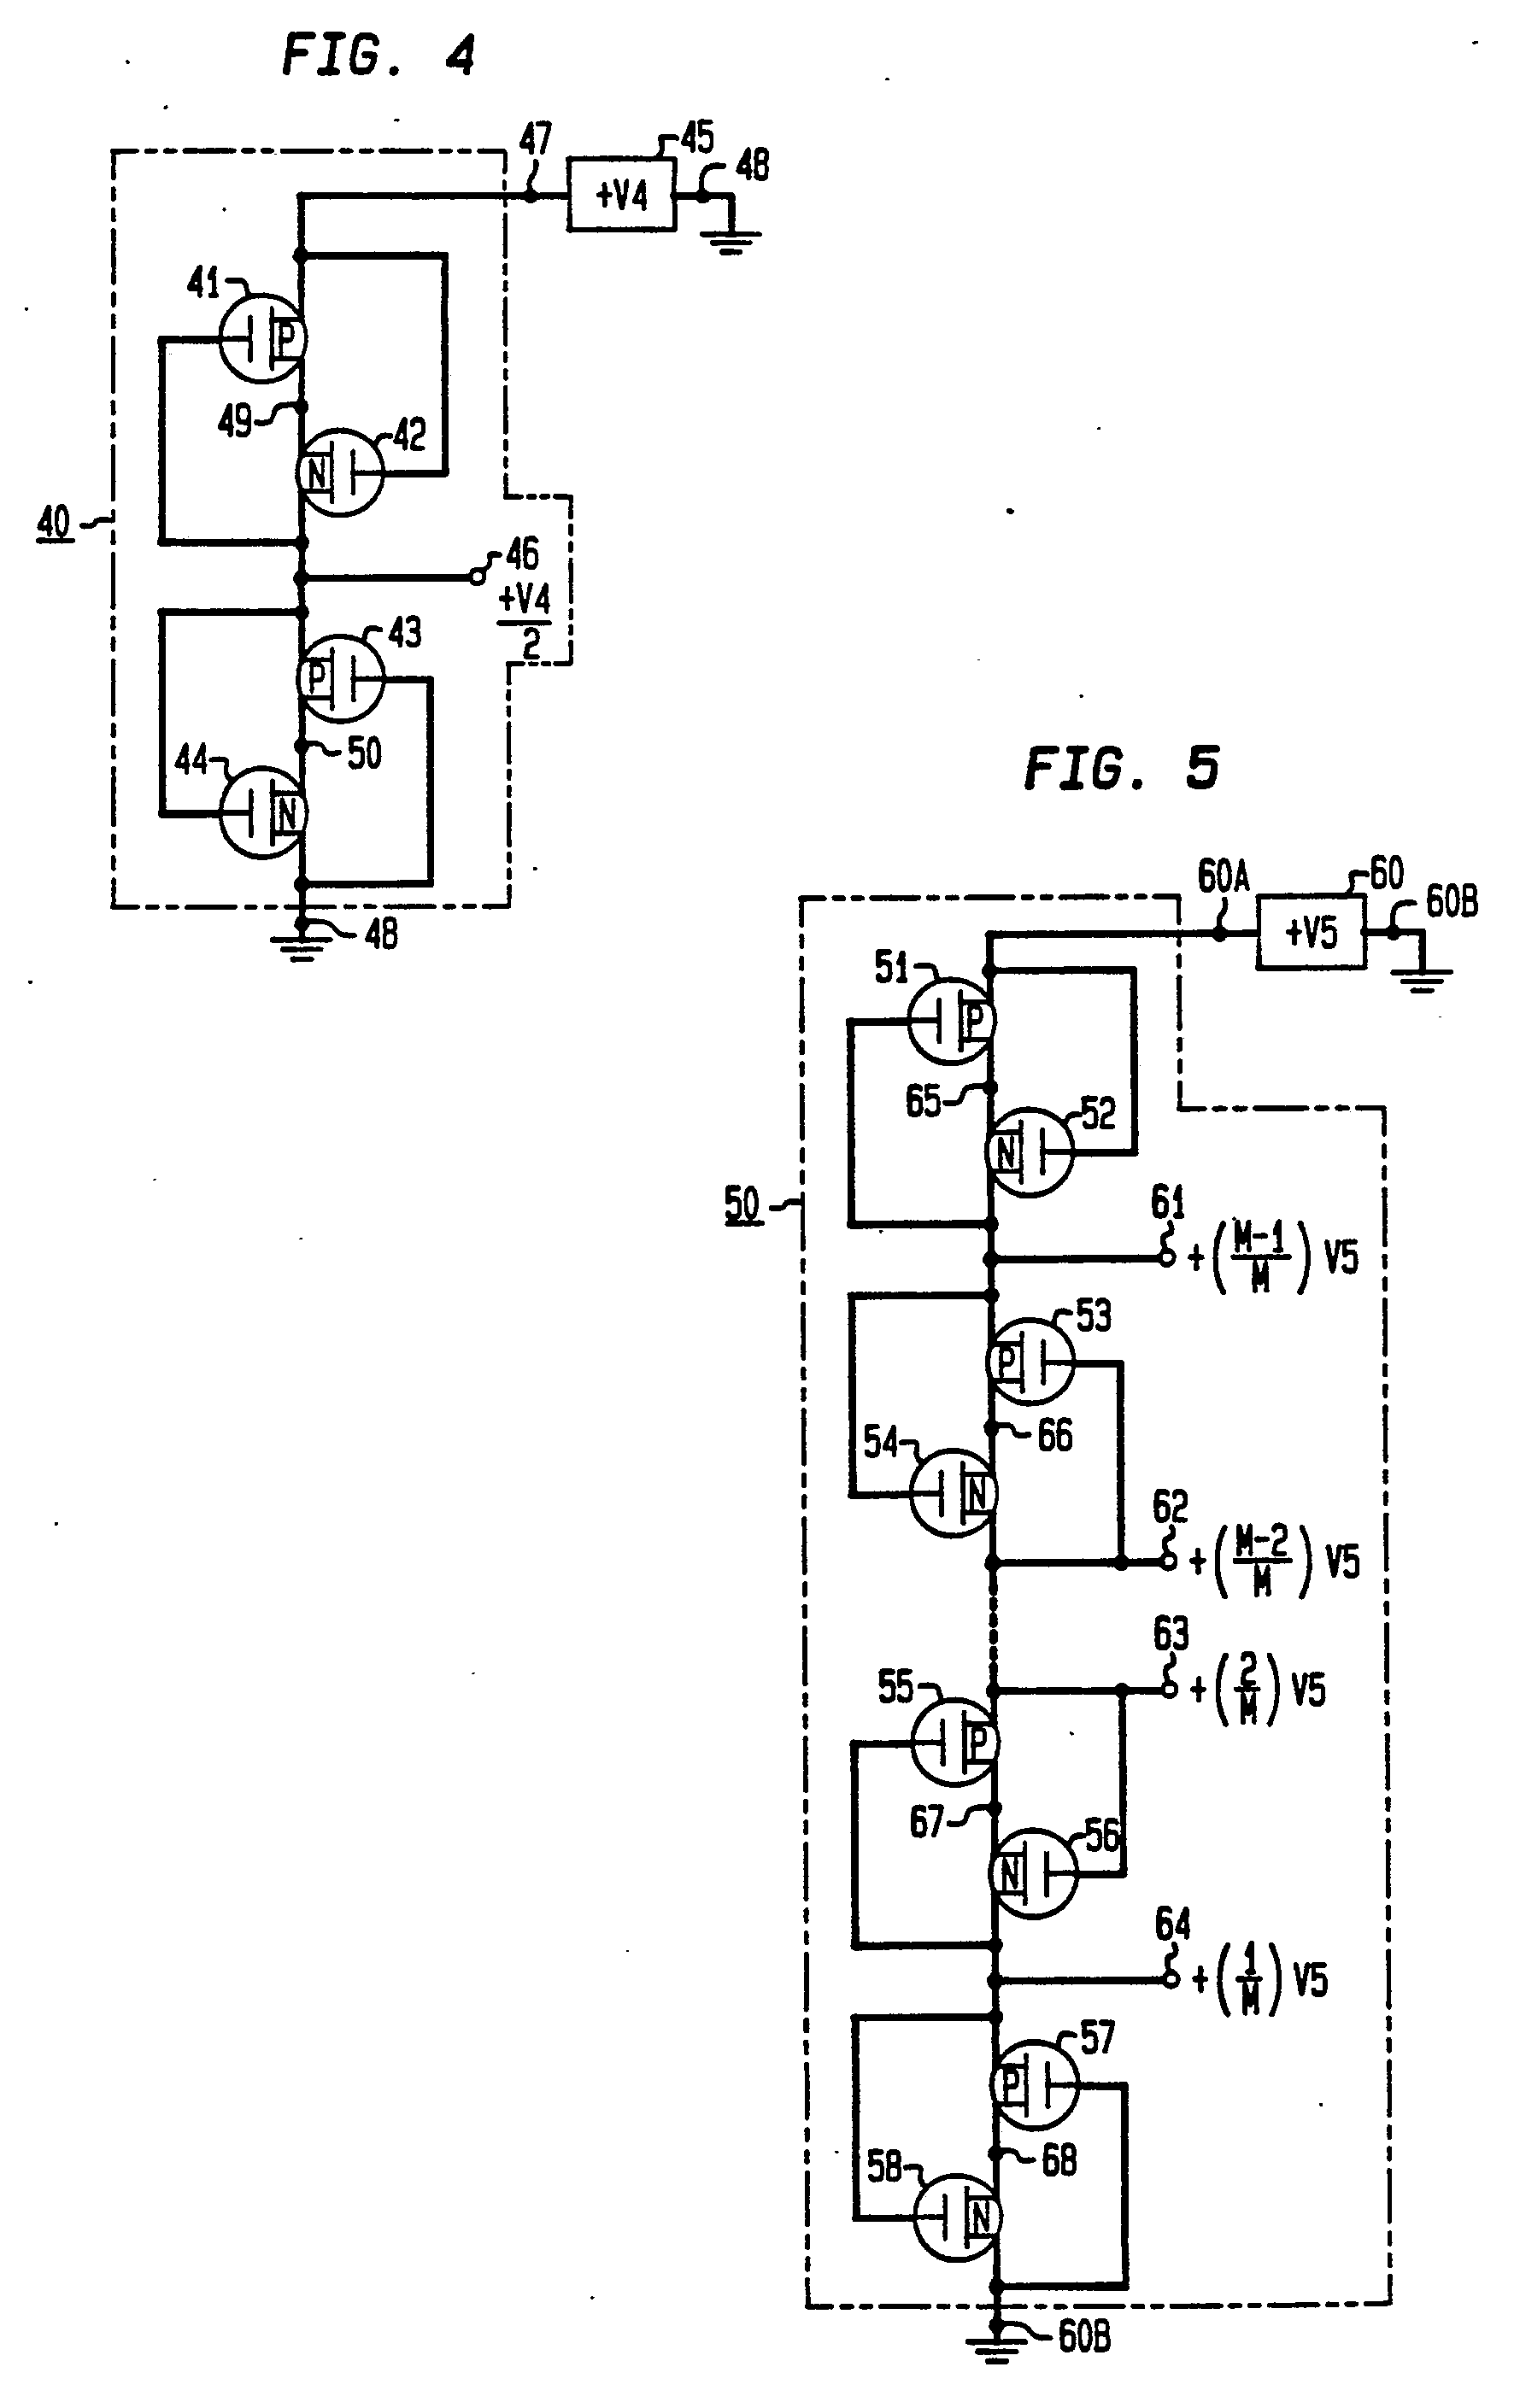 Voltage Divider Circuits Patent 0317222 The Potential Bias Drawing